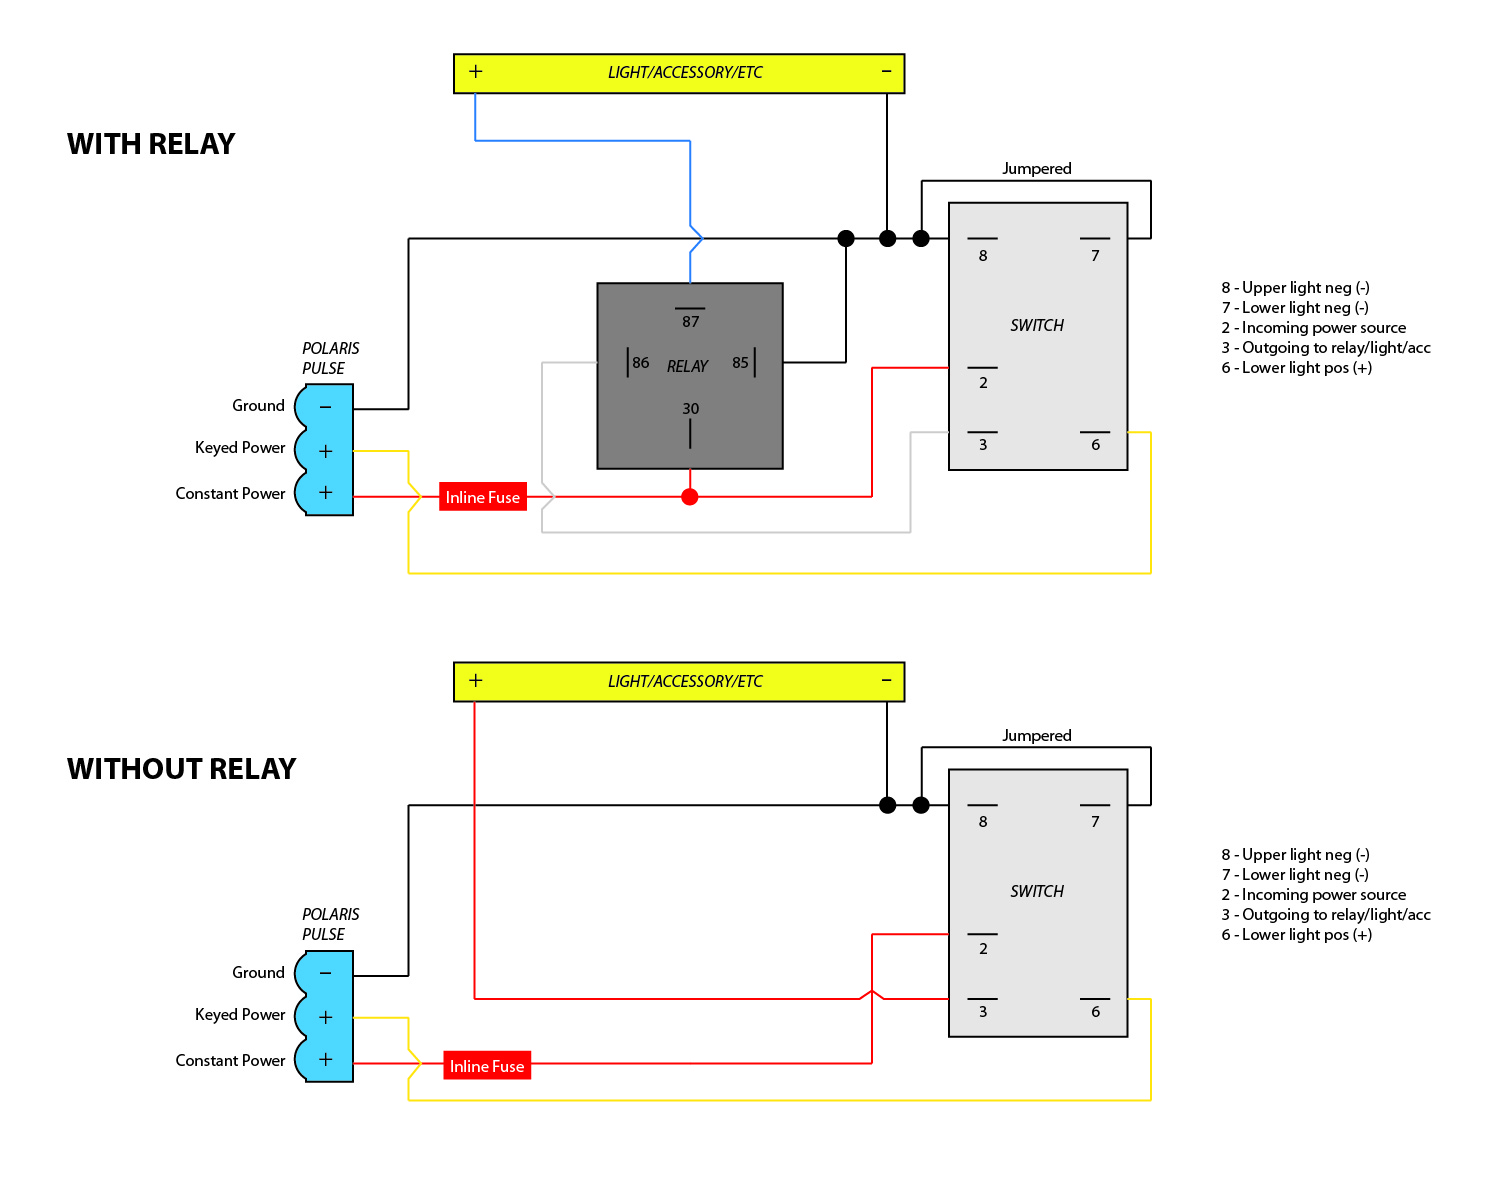 Wiring Light Bar Diagram Without Relay from www.prcforum.com